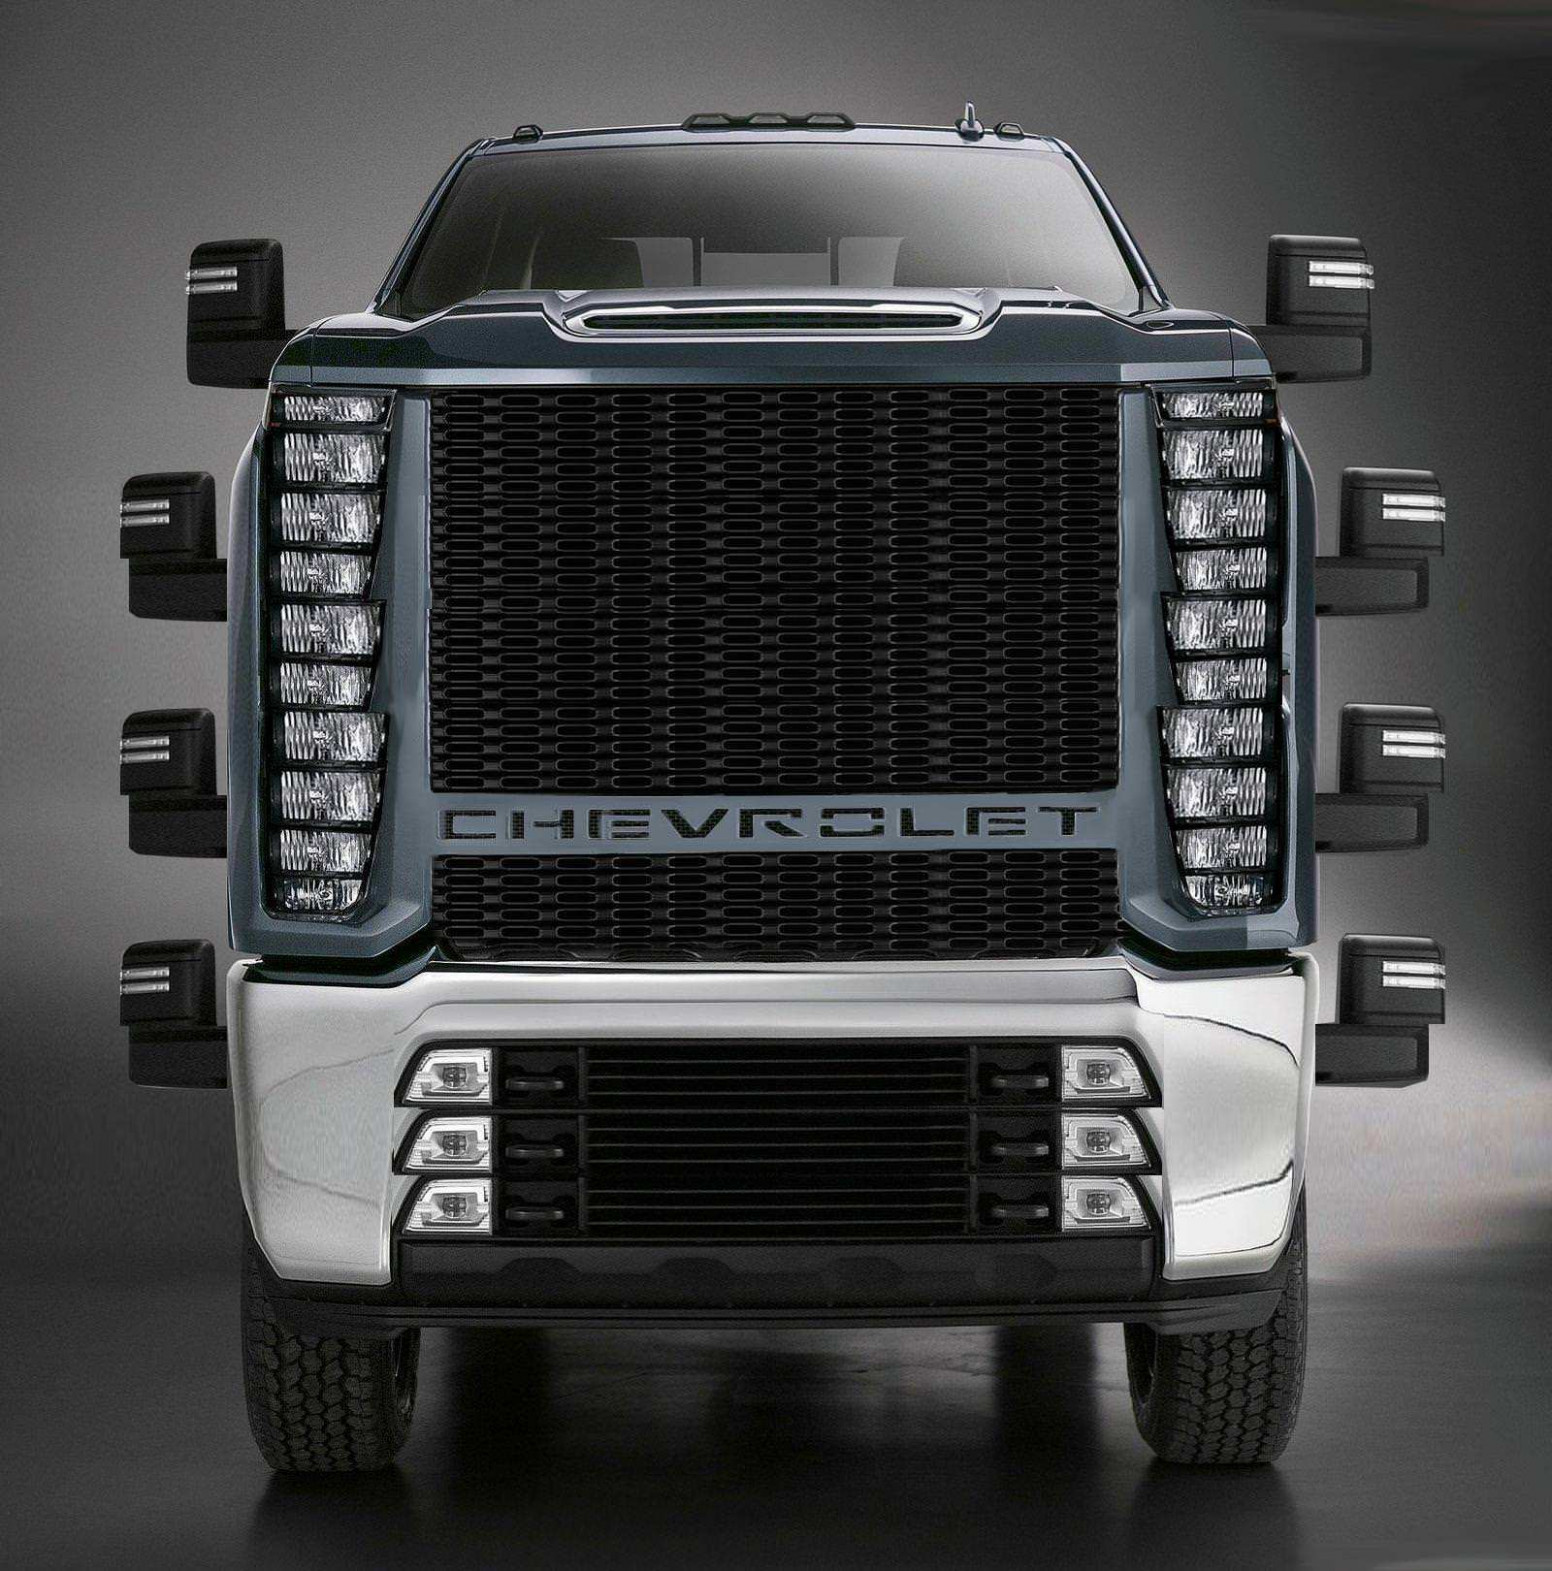 6 All New 6 Chevrolet Grill Performance and New Engine - Car ..